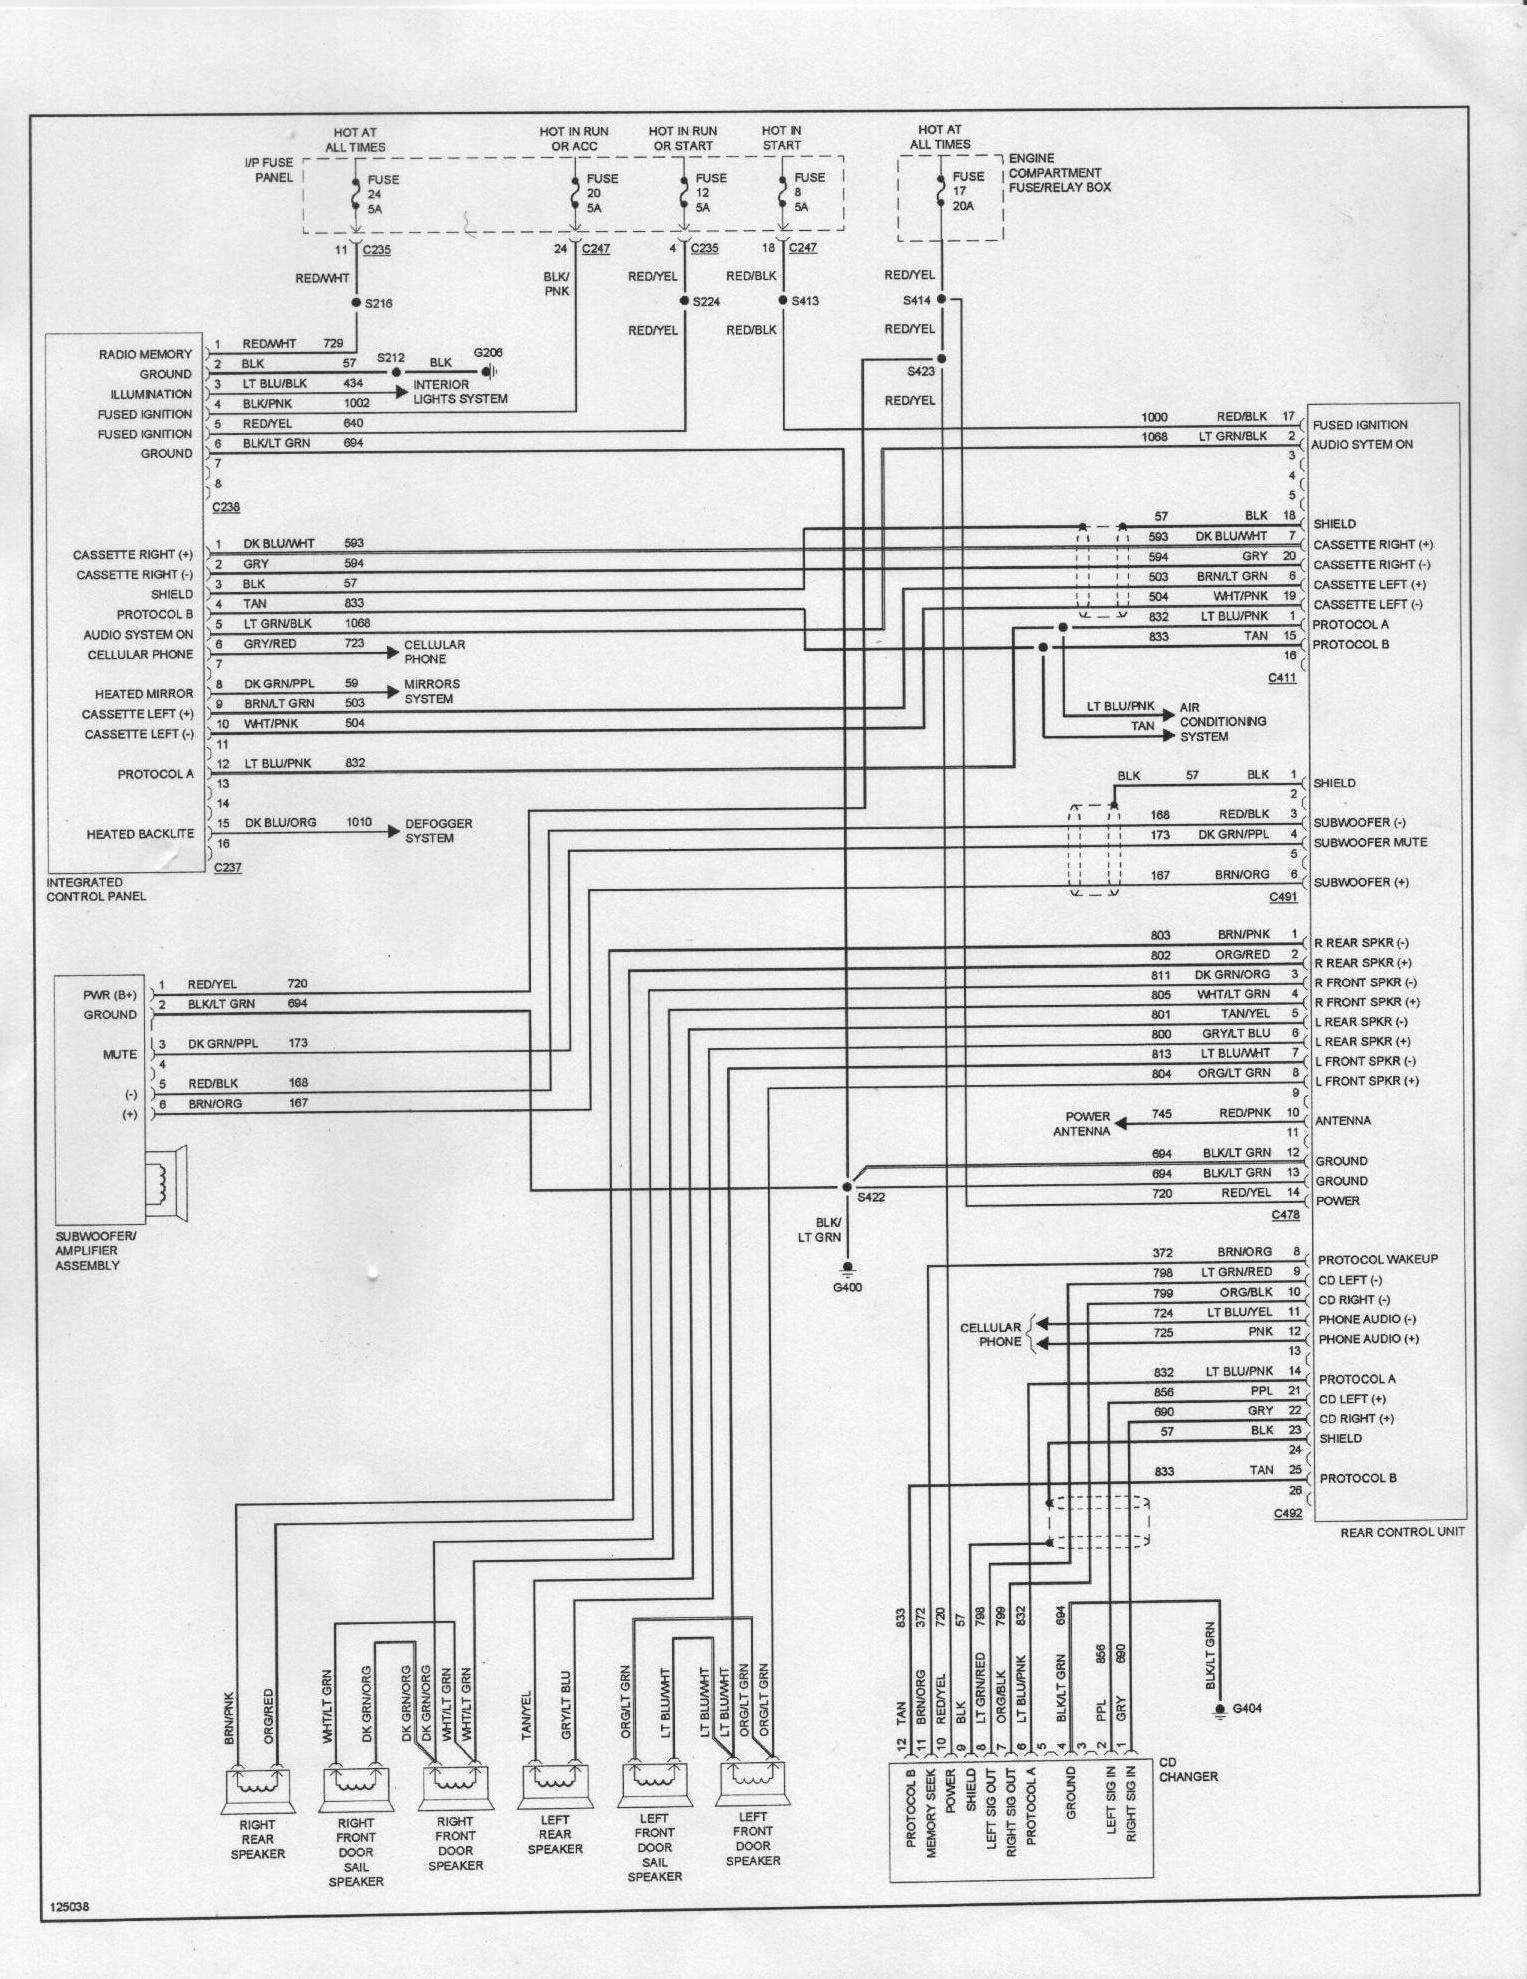 44917d1173064914 wiring diagram ford taurus diagram96 2006 ford taurus wiring diagram wiring diagram 2006 ford taurus 03 ford taurus radio wiring diagram at creativeand.co